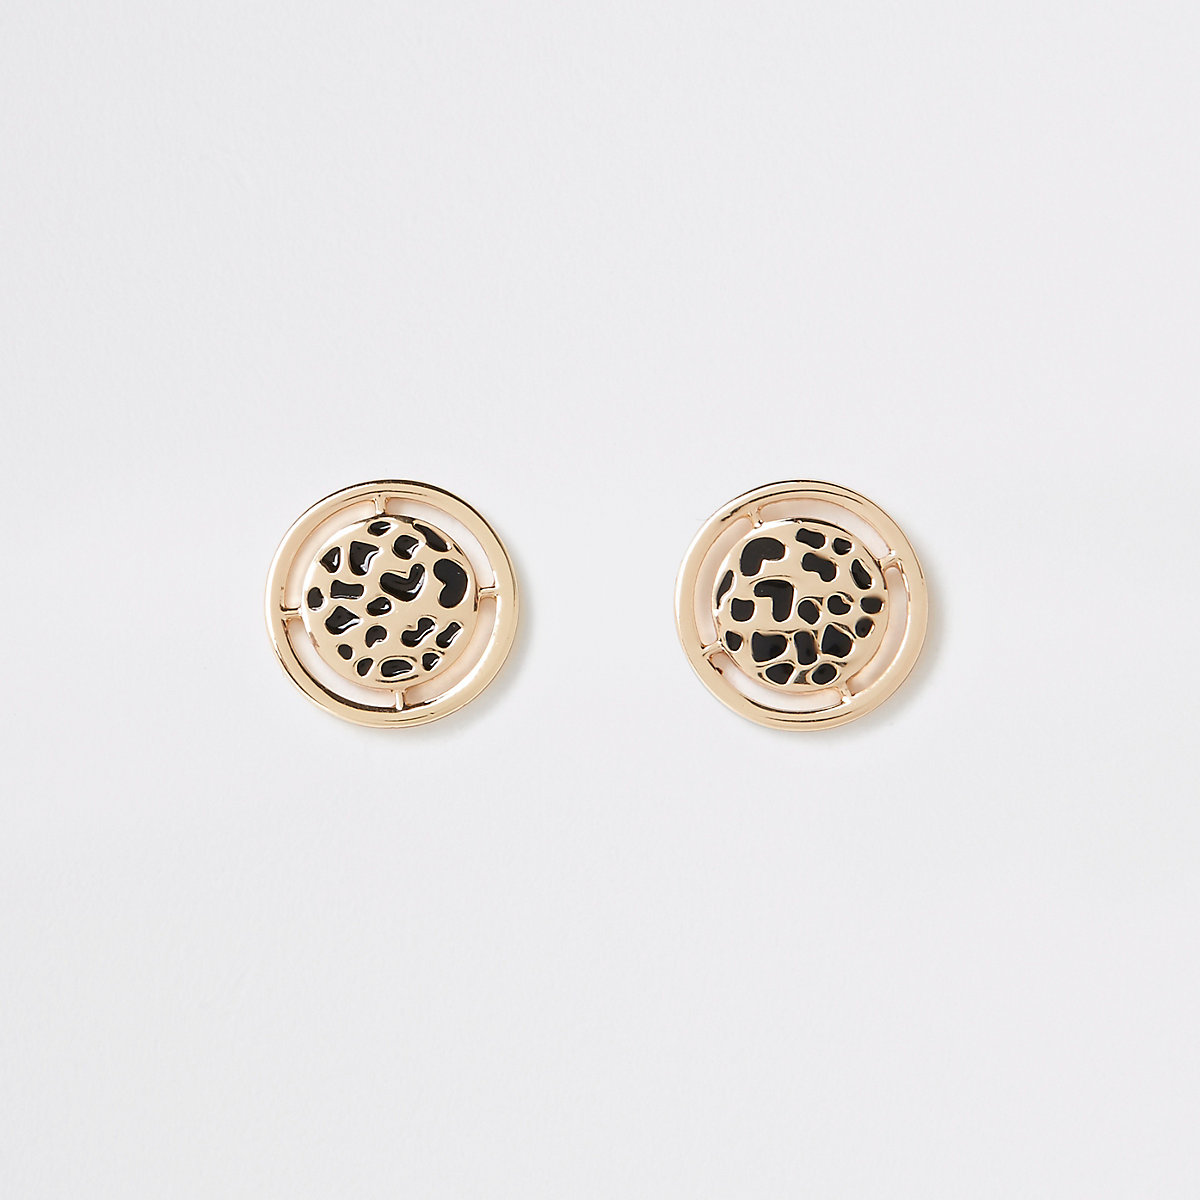 Gold color leopard design stud earrings